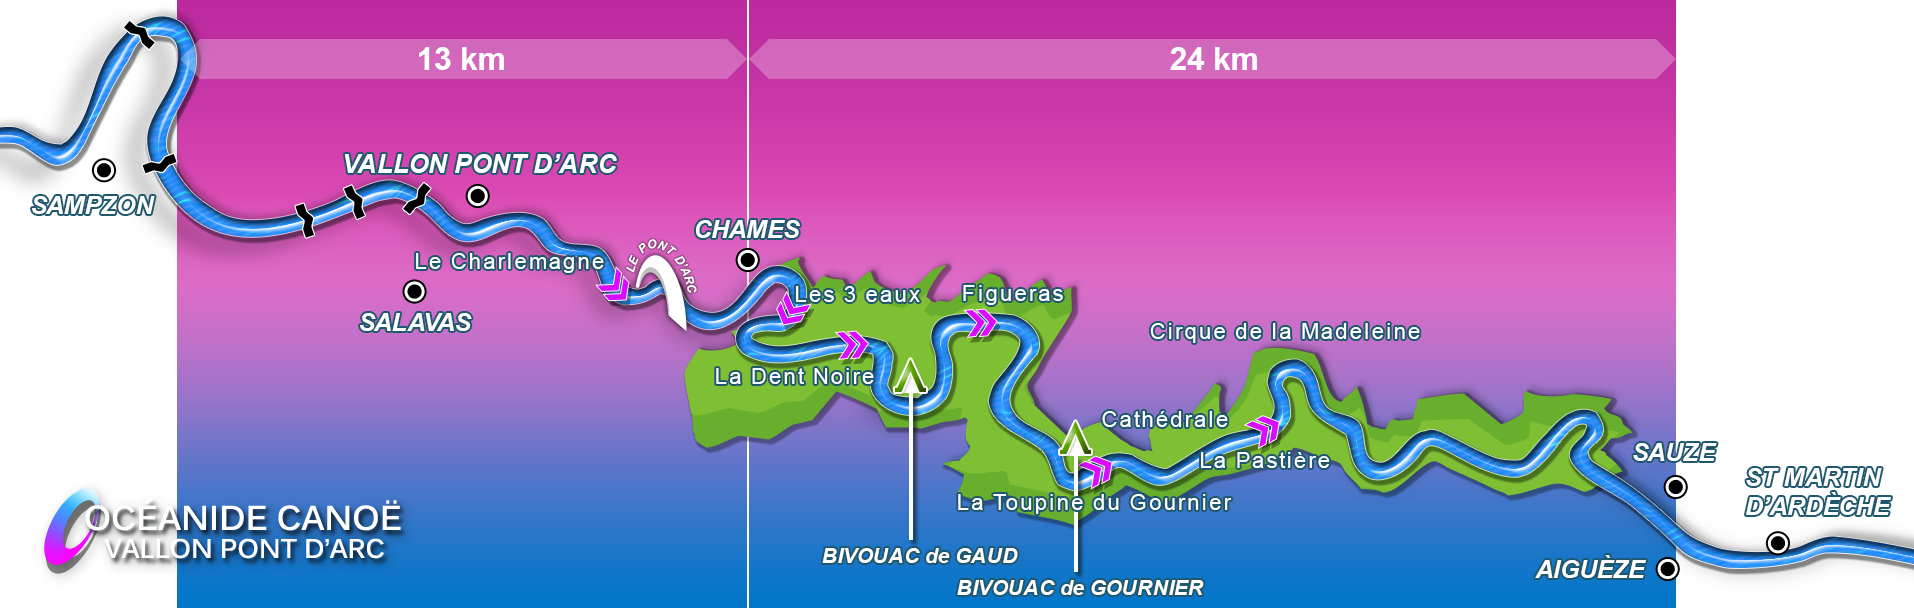 Descent map 13+24 km